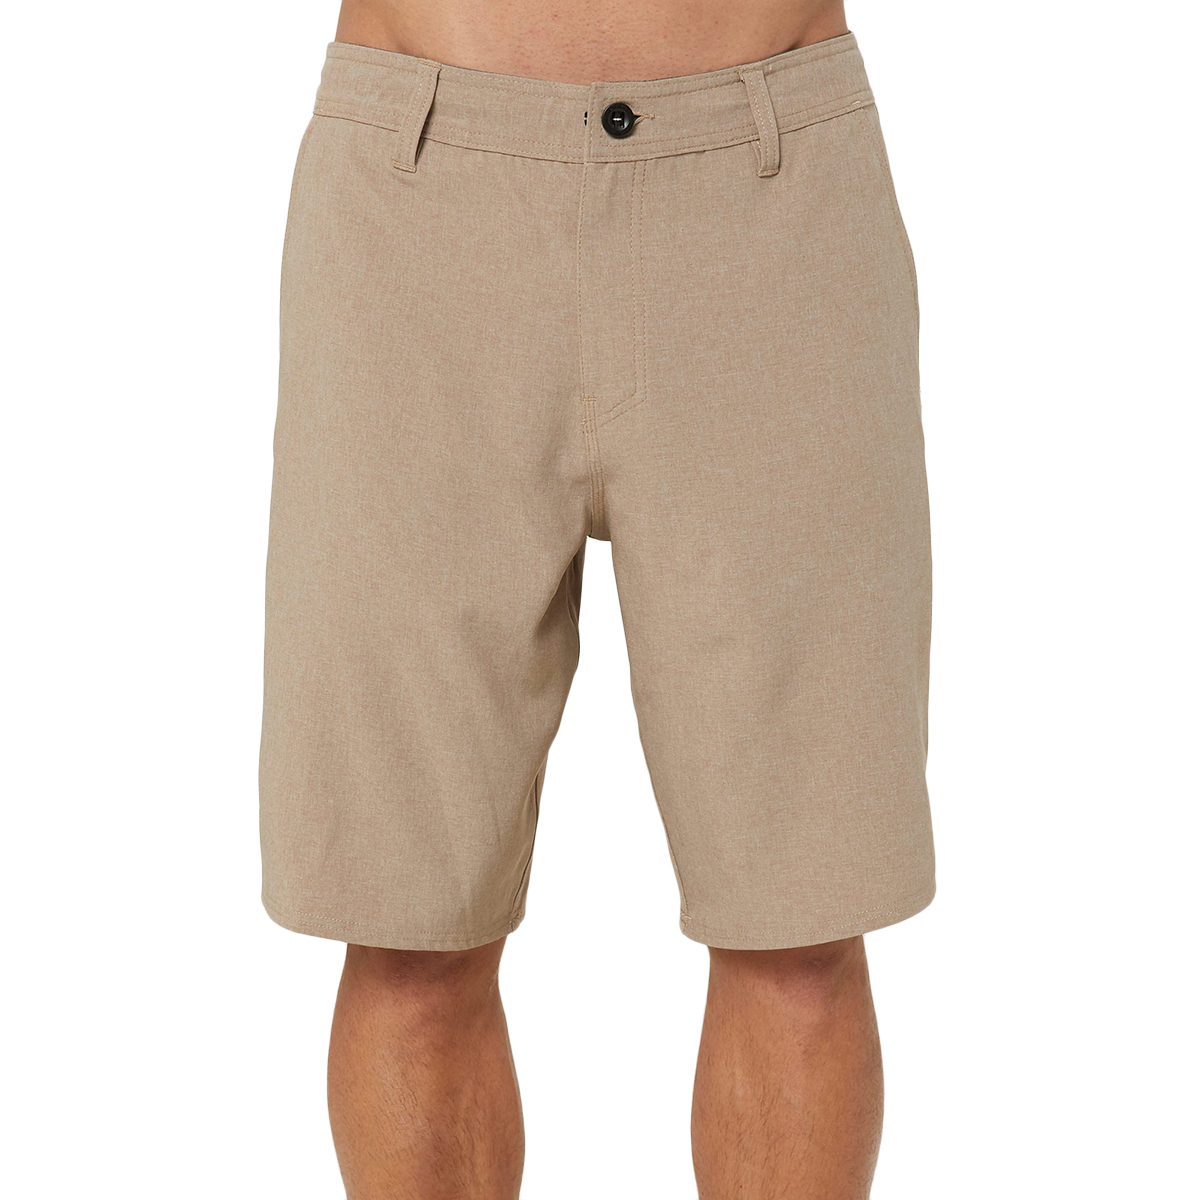 O'neill Men's Reserve Heather Hybrid Shorts - Brown, 34